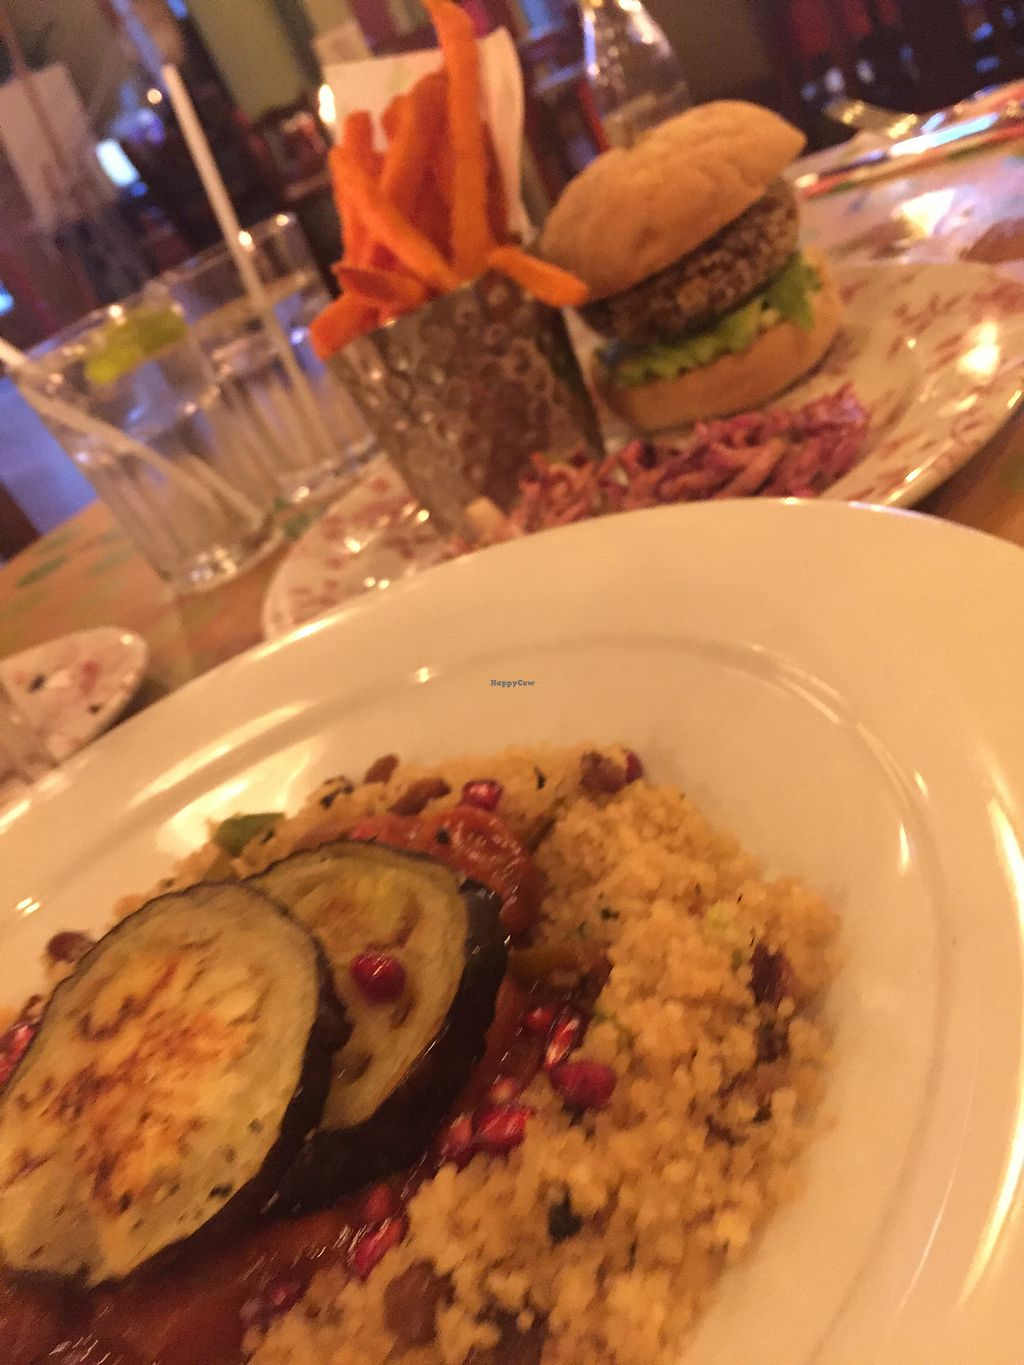 """Photo of The Cosy Club  by <a href=""""/members/profile/butternutsquashie"""">butternutsquashie</a> <br/>Vegan vegan :) <br/> April 9, 2018  - <a href='/contact/abuse/image/98749/383049'>Report</a>"""